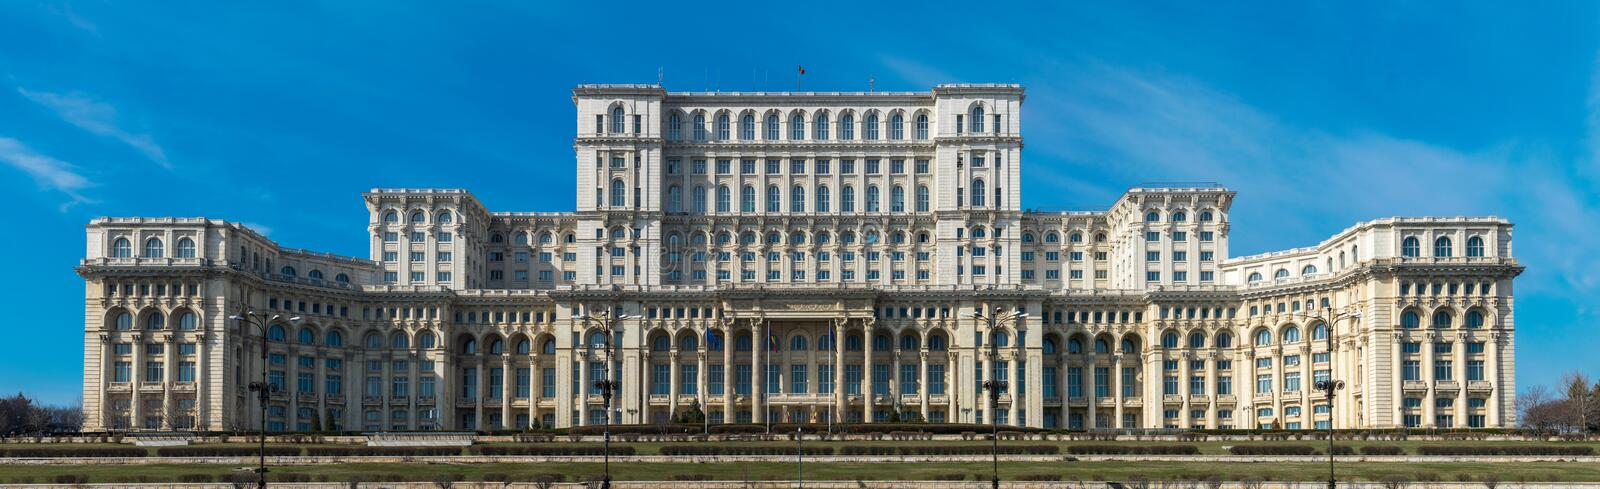 Romanian House of Parliament royalty free stock image